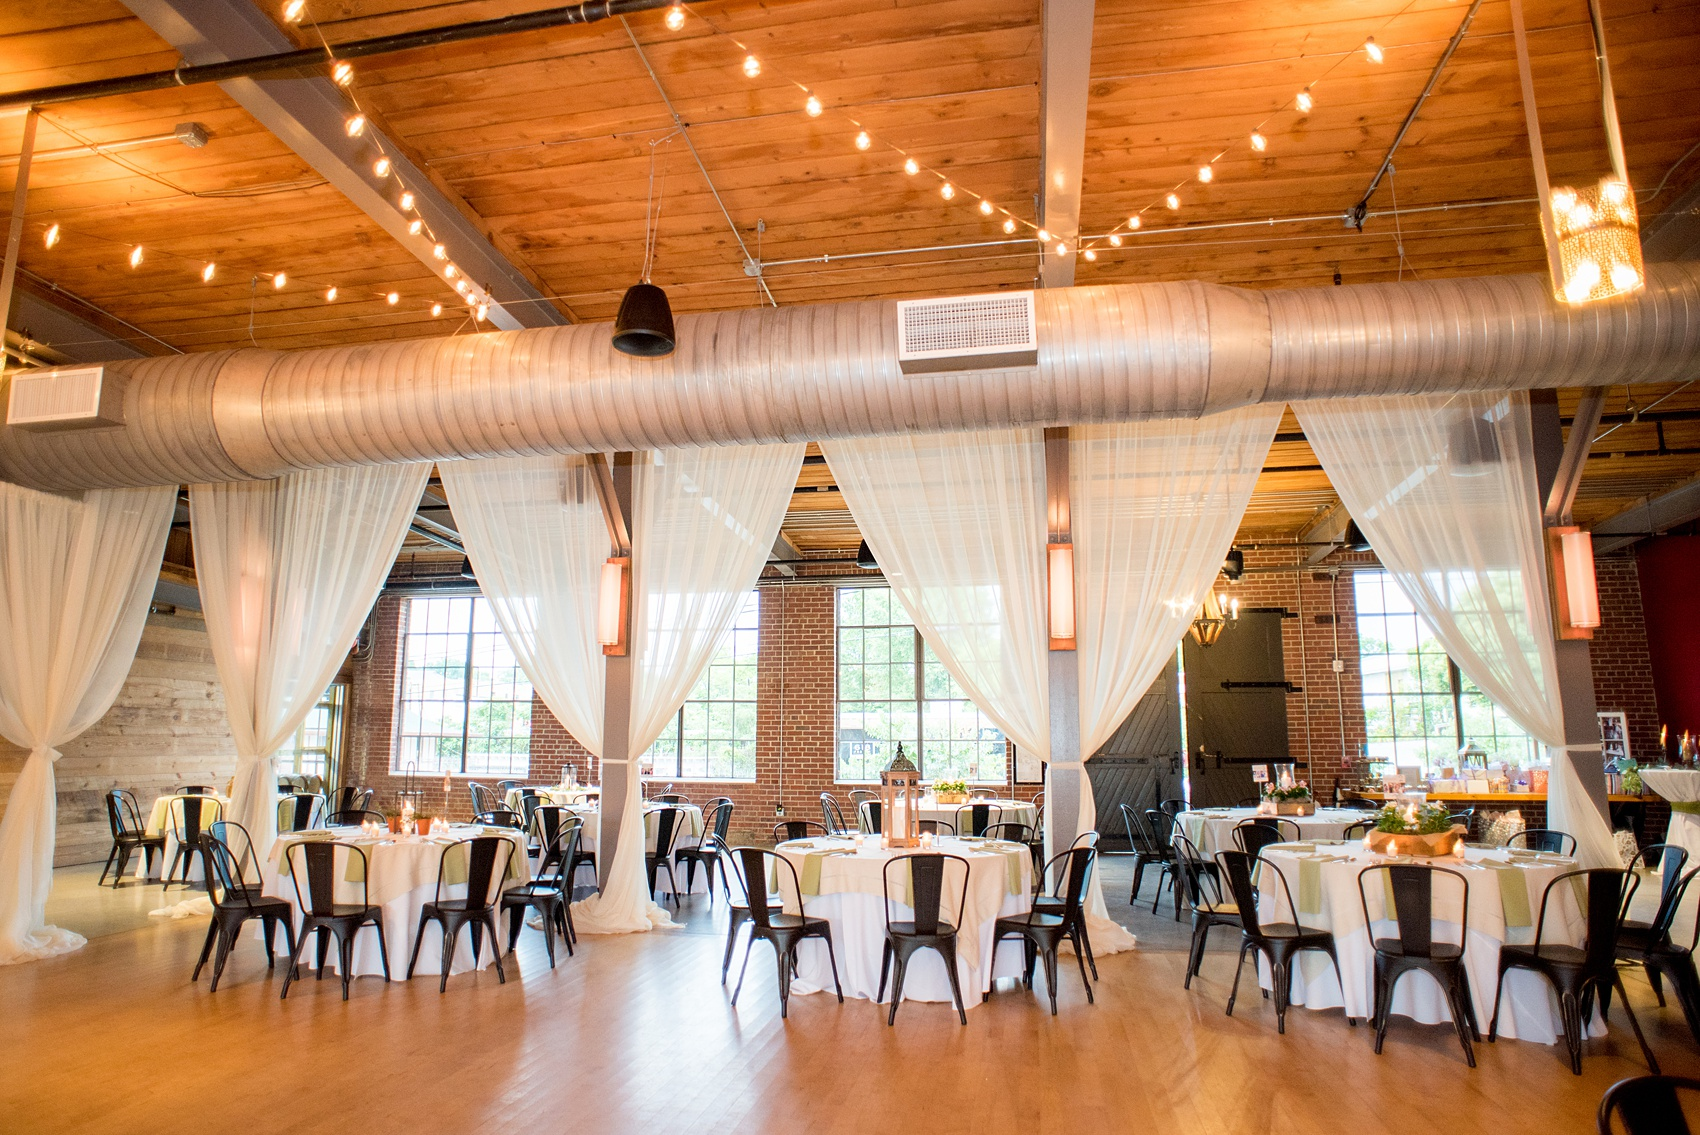 Mikkel Paige Photography photos from a wedding at The Rickhouse in Durham, North Carolina. Picture of the reception setup with metal chairs, draping and rustic lantern centerpieces.